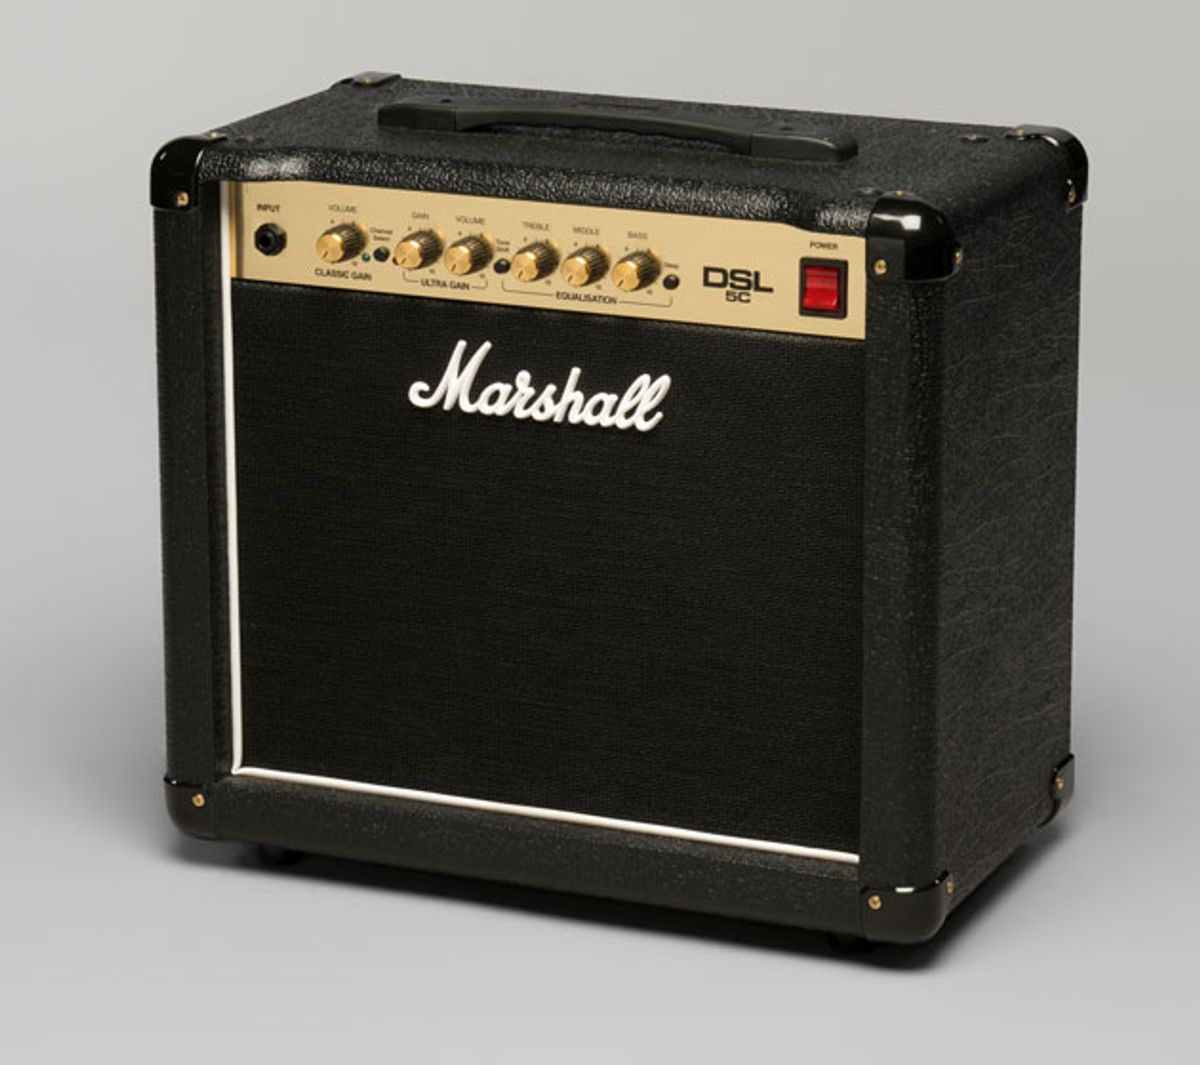 Marshall Amplification Introduces the DSL5C